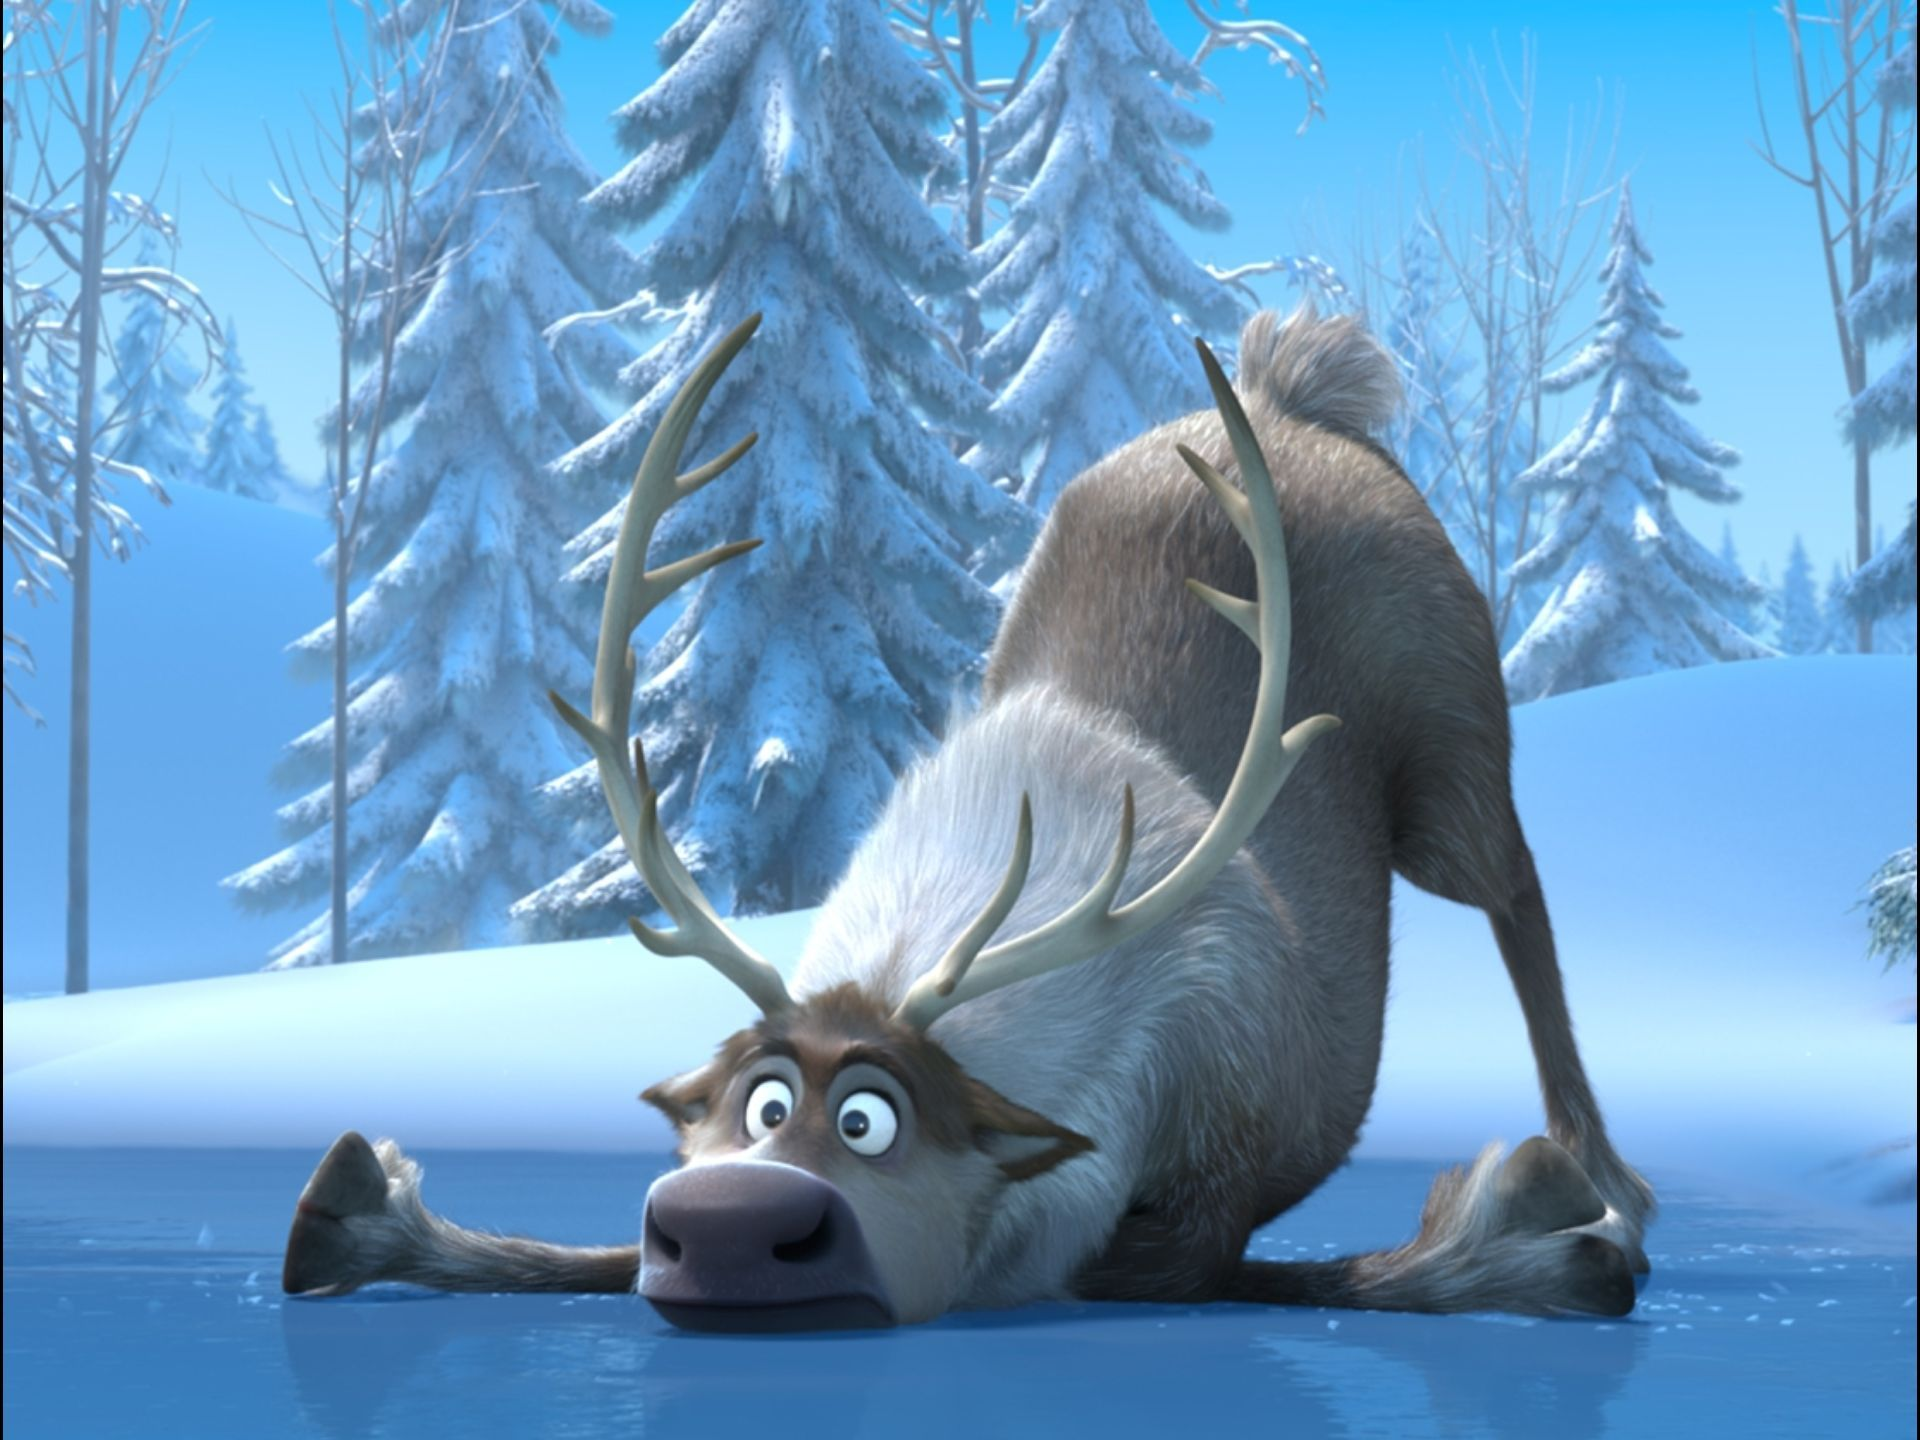 Disney's FROZEN Images. FROZEN Features the Voices of ... Disney Frozen Sven Wallpaper